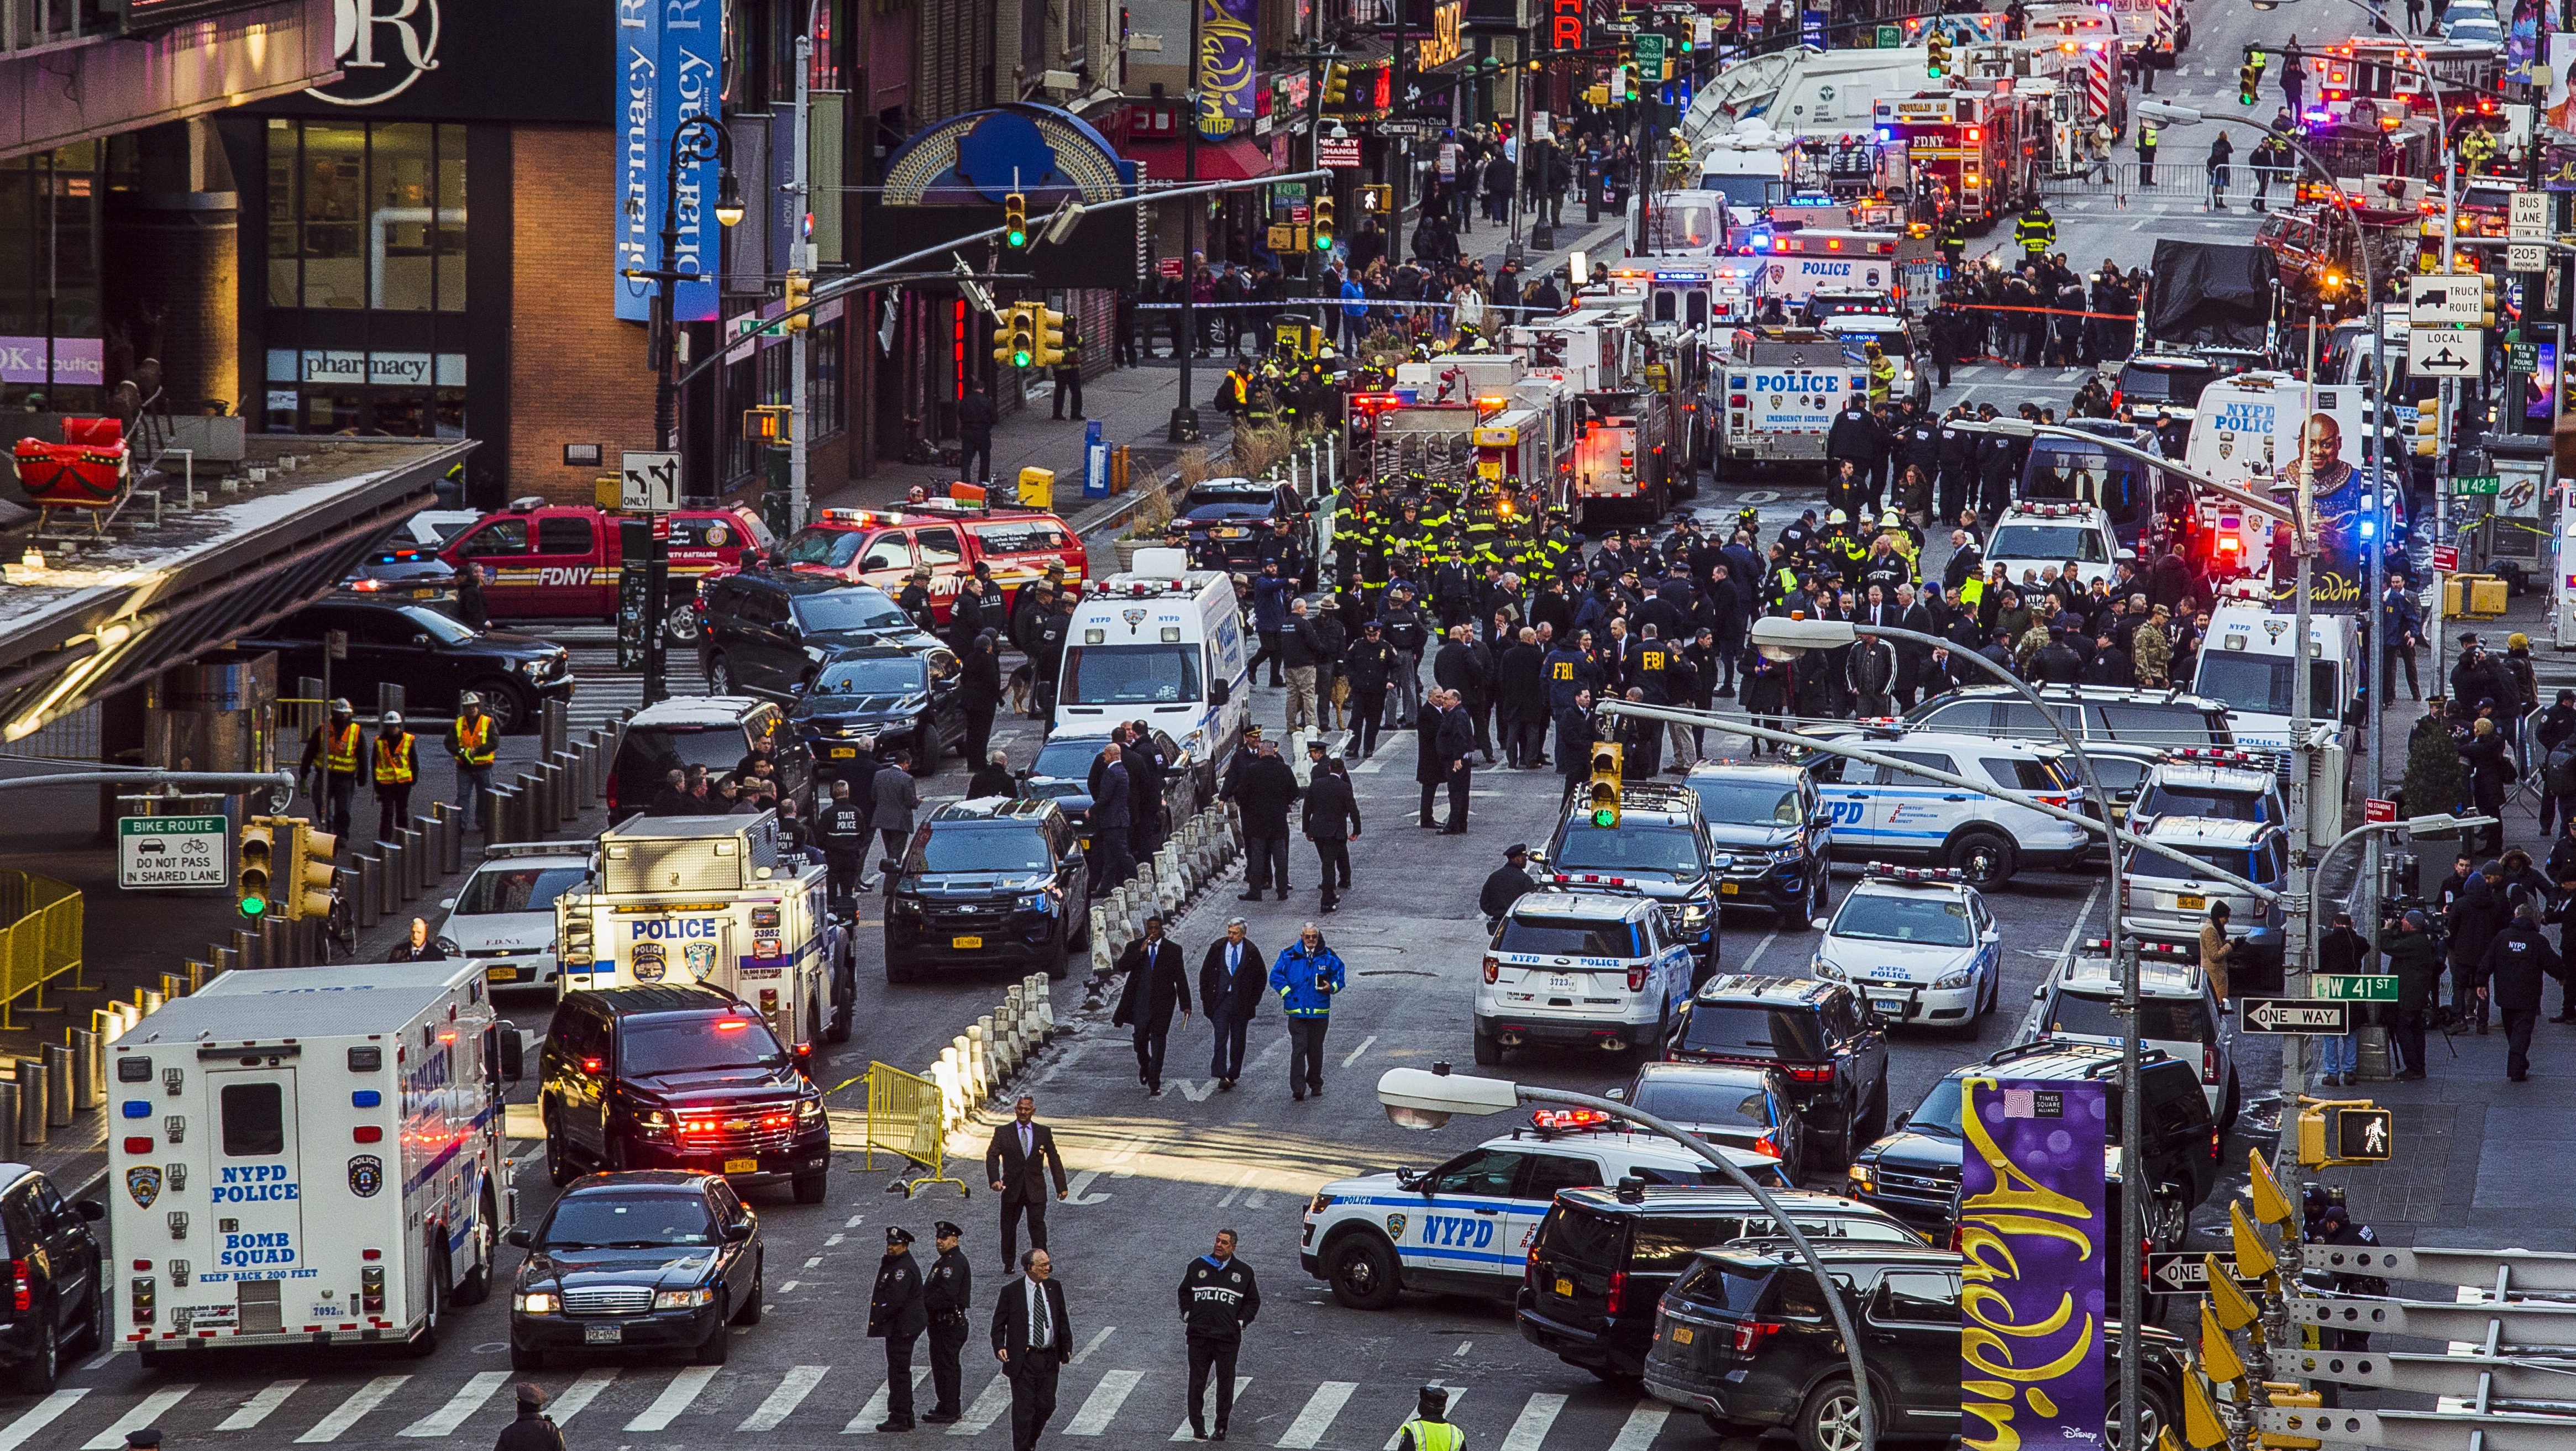 Law enforcement officials work following an explosion near New York's Times Square on Monday, Dec. 11, 2017. Police said a man with a pipe bomb strapped to his body set off the crude device in a passageway under 42nd Street between Seventh and Eighth Avenues. (AP Photo/Andres Kudacki)